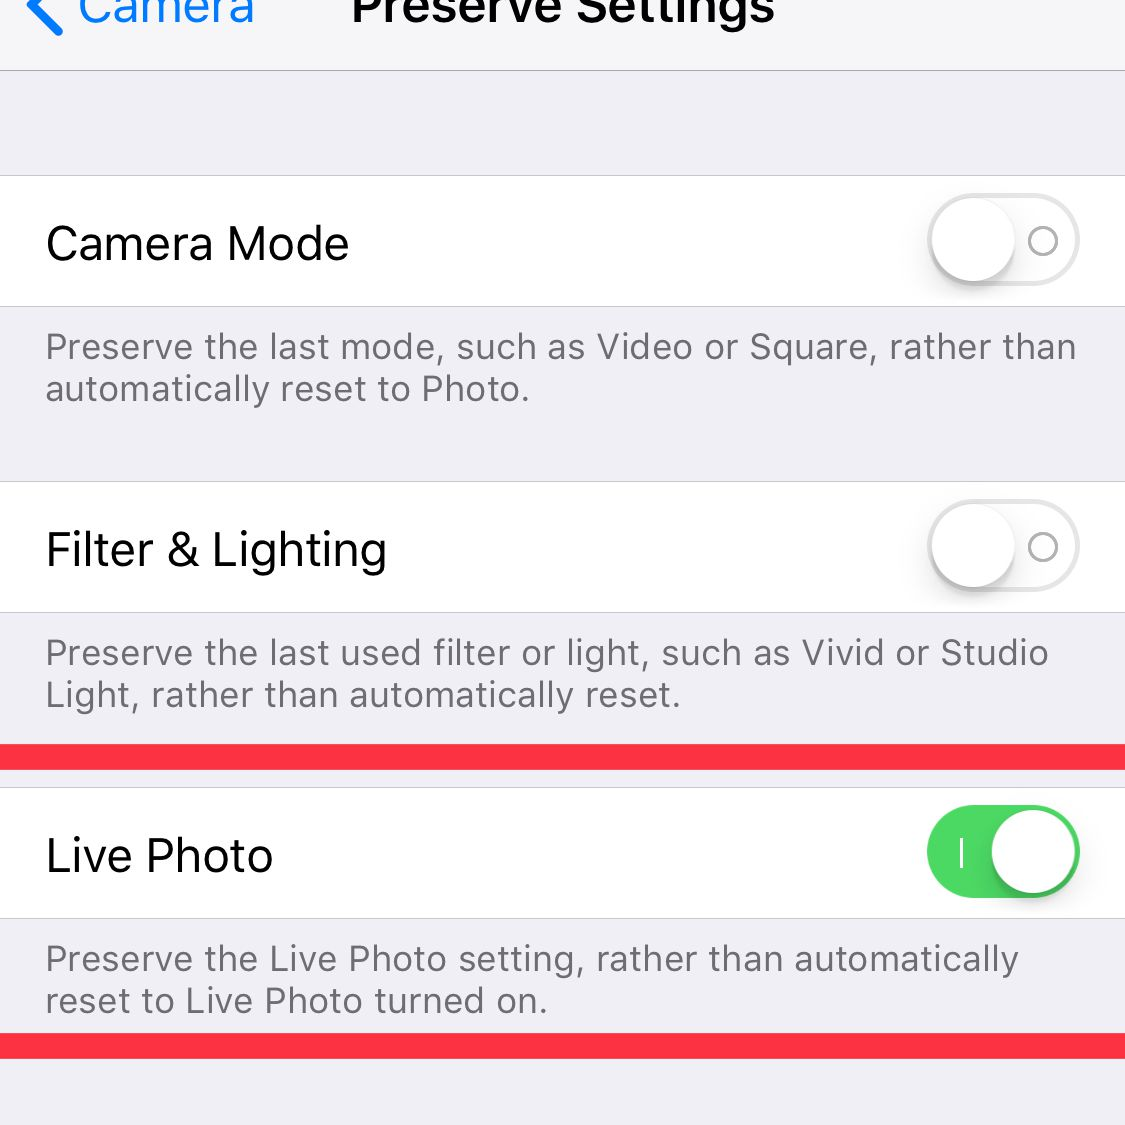 how to turn off sound on phone for applications